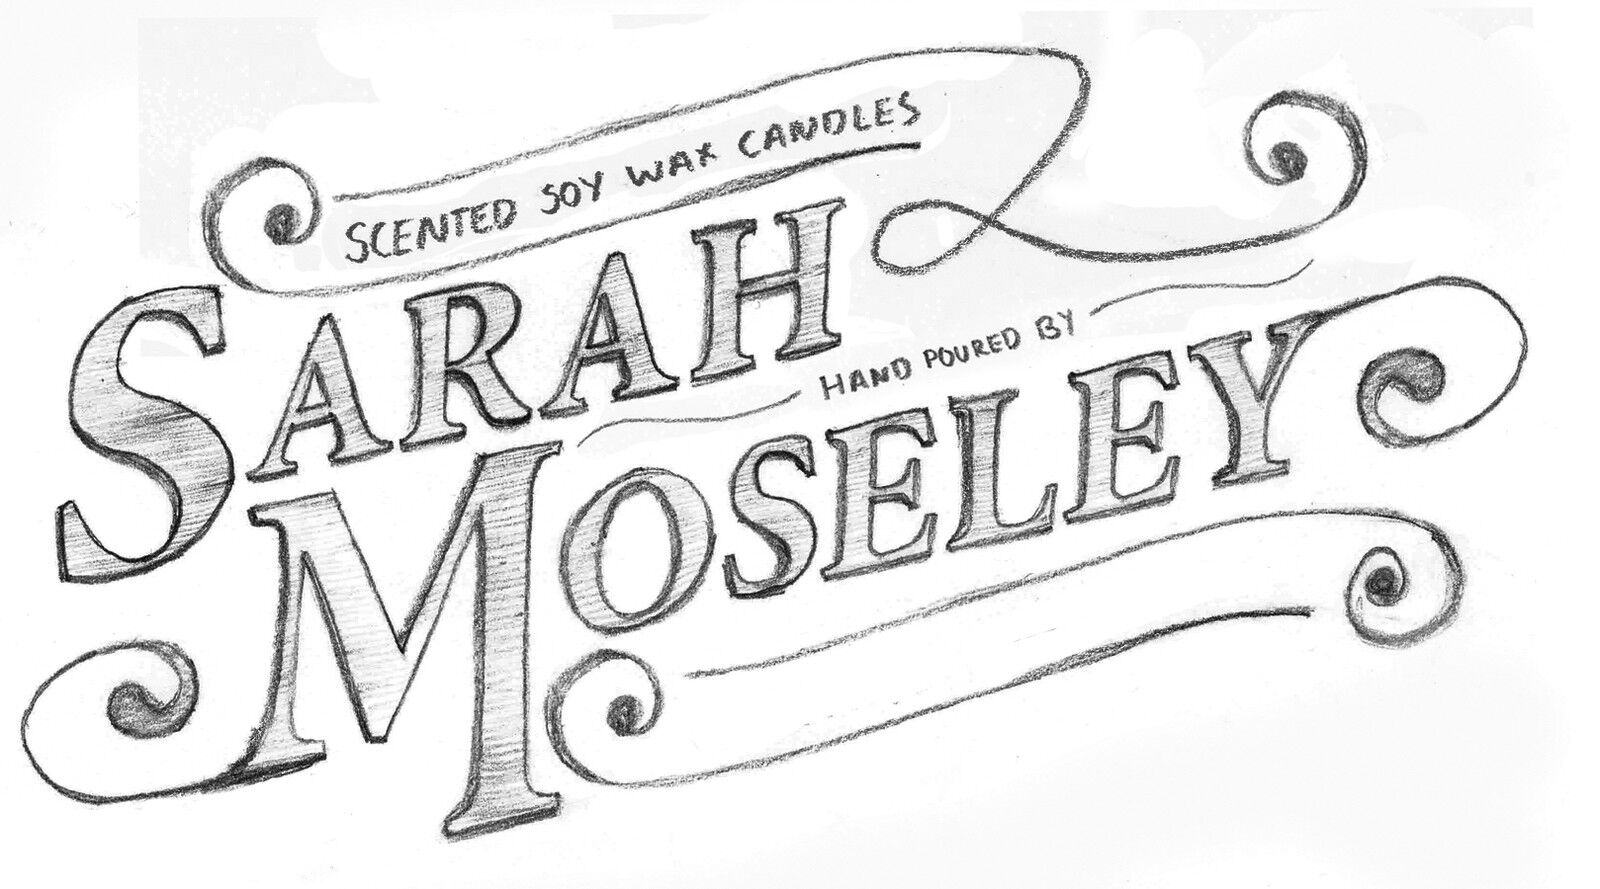 Sarah Moseley Scented Candles